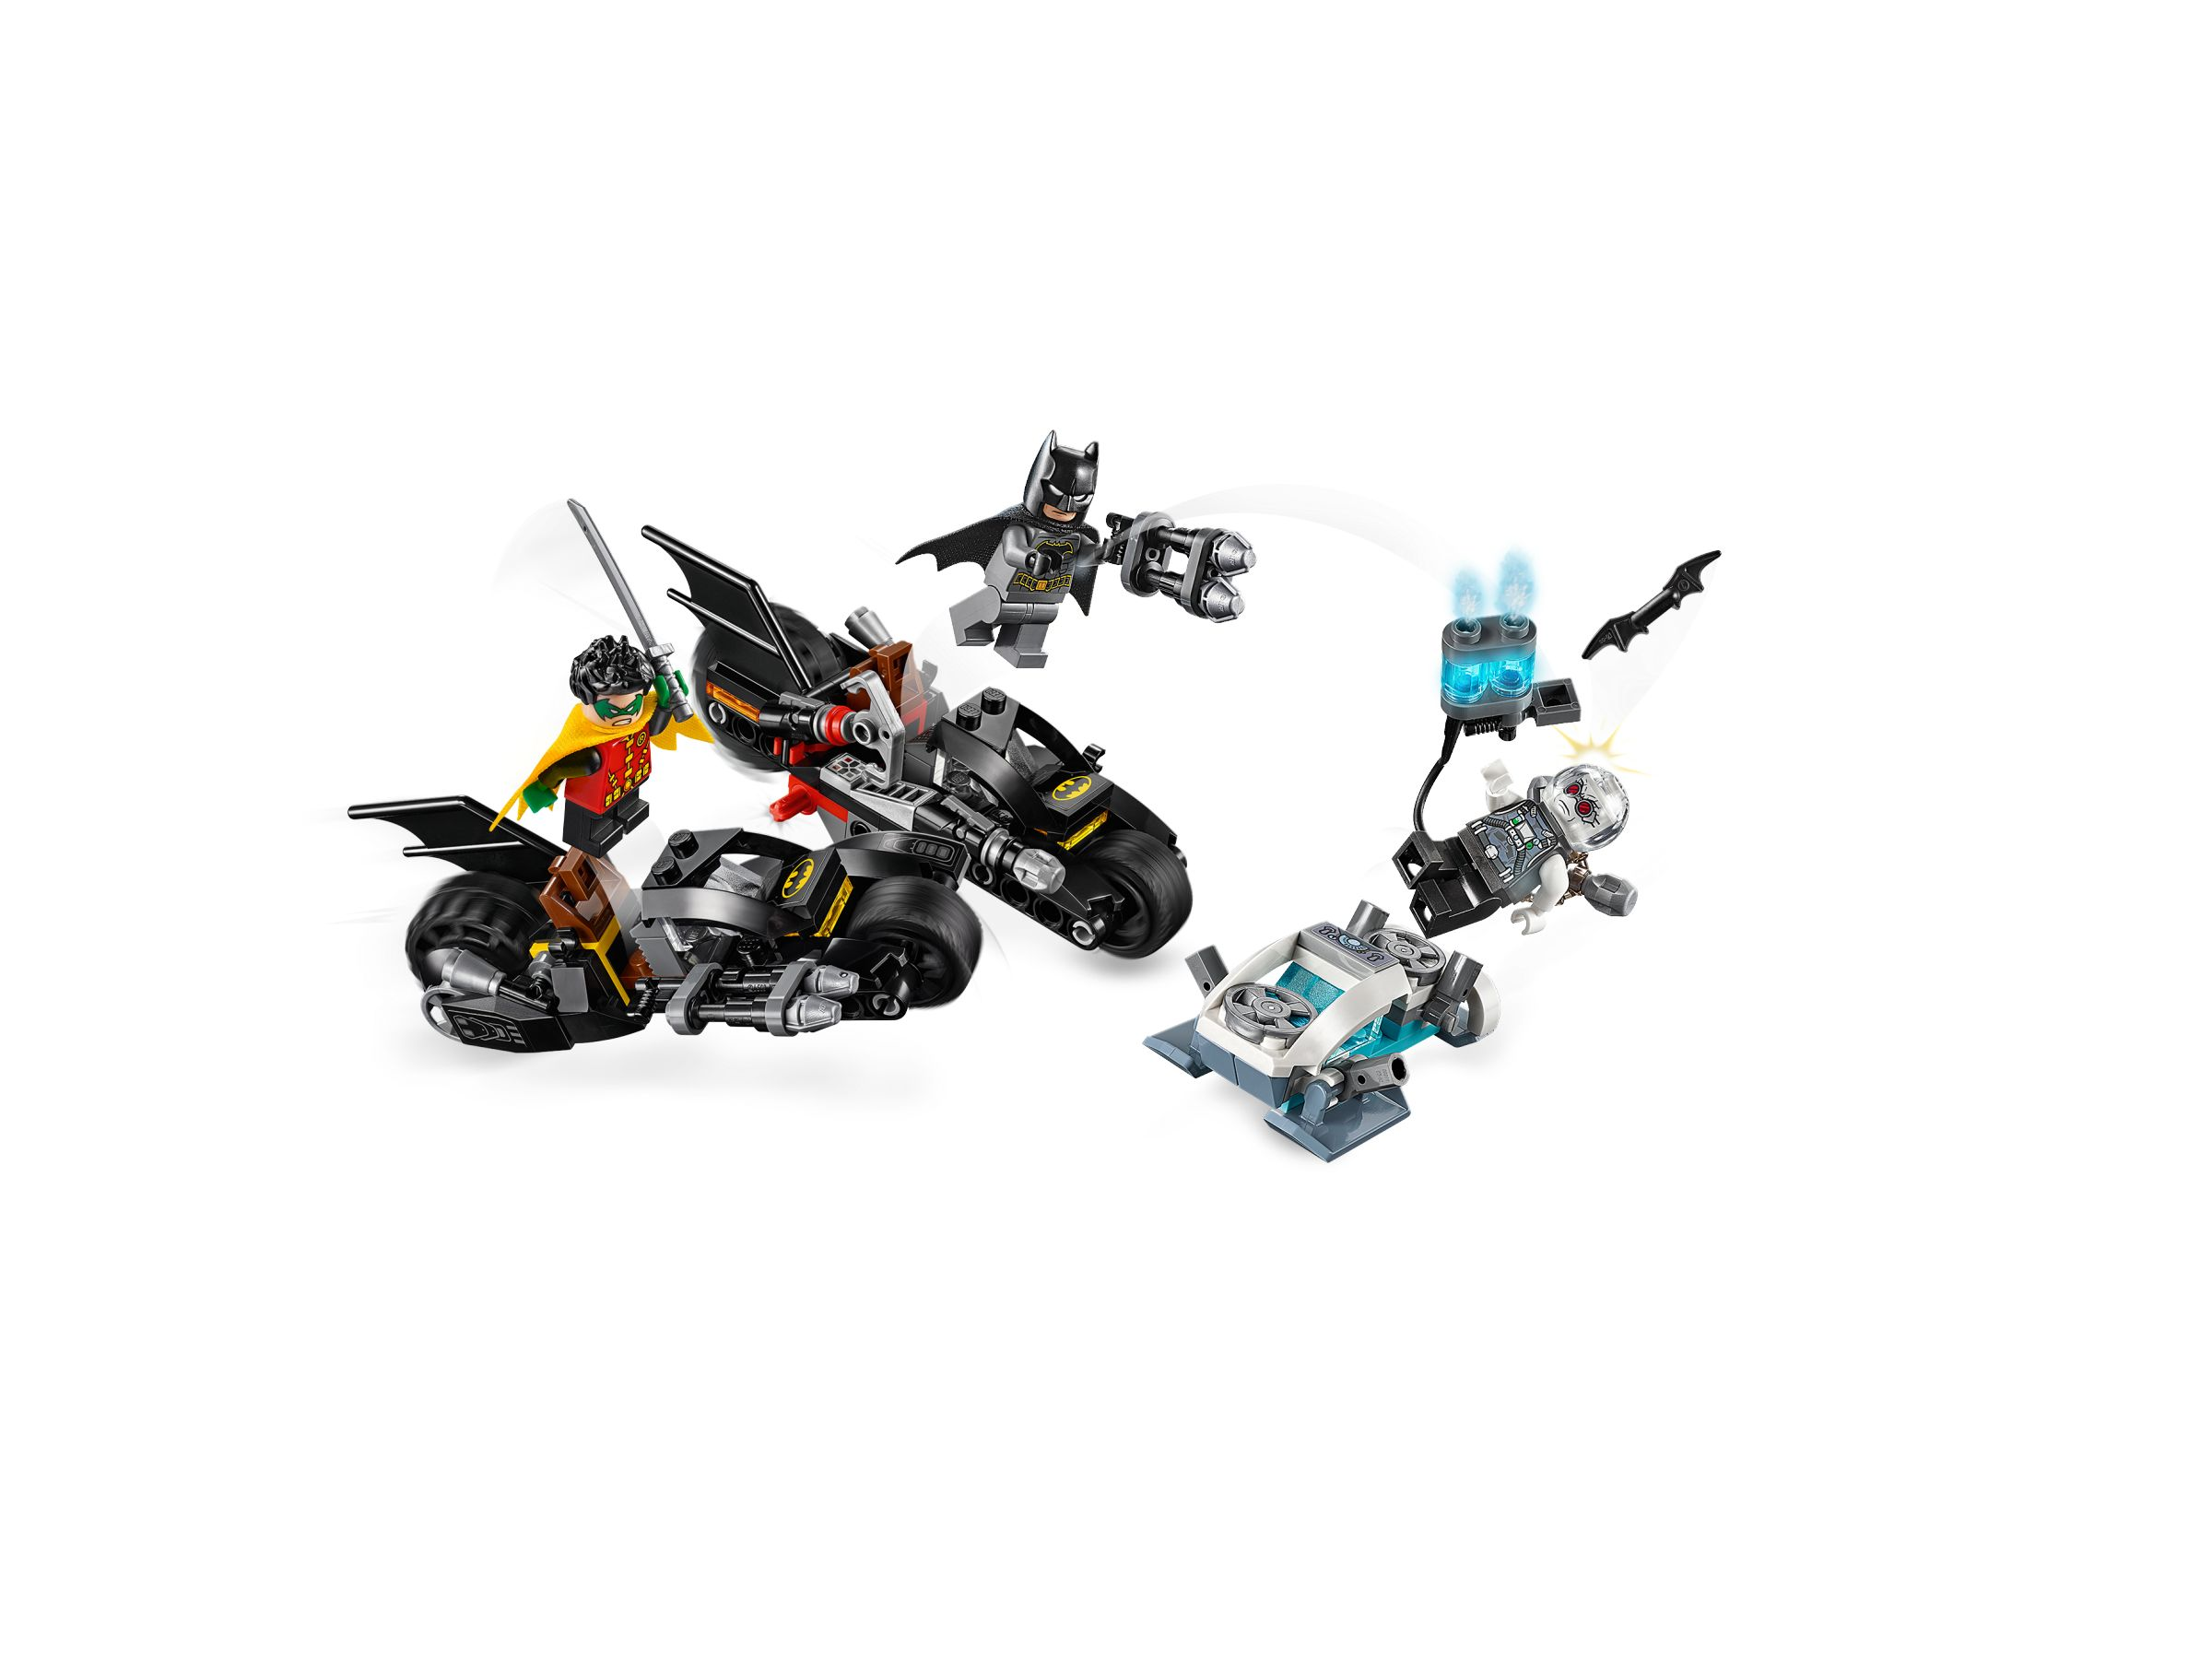 LEGO Super Heroes 76118 Batcycle-Duell mit Mr. Freeze™ LEGO_76118_alt3.jpg